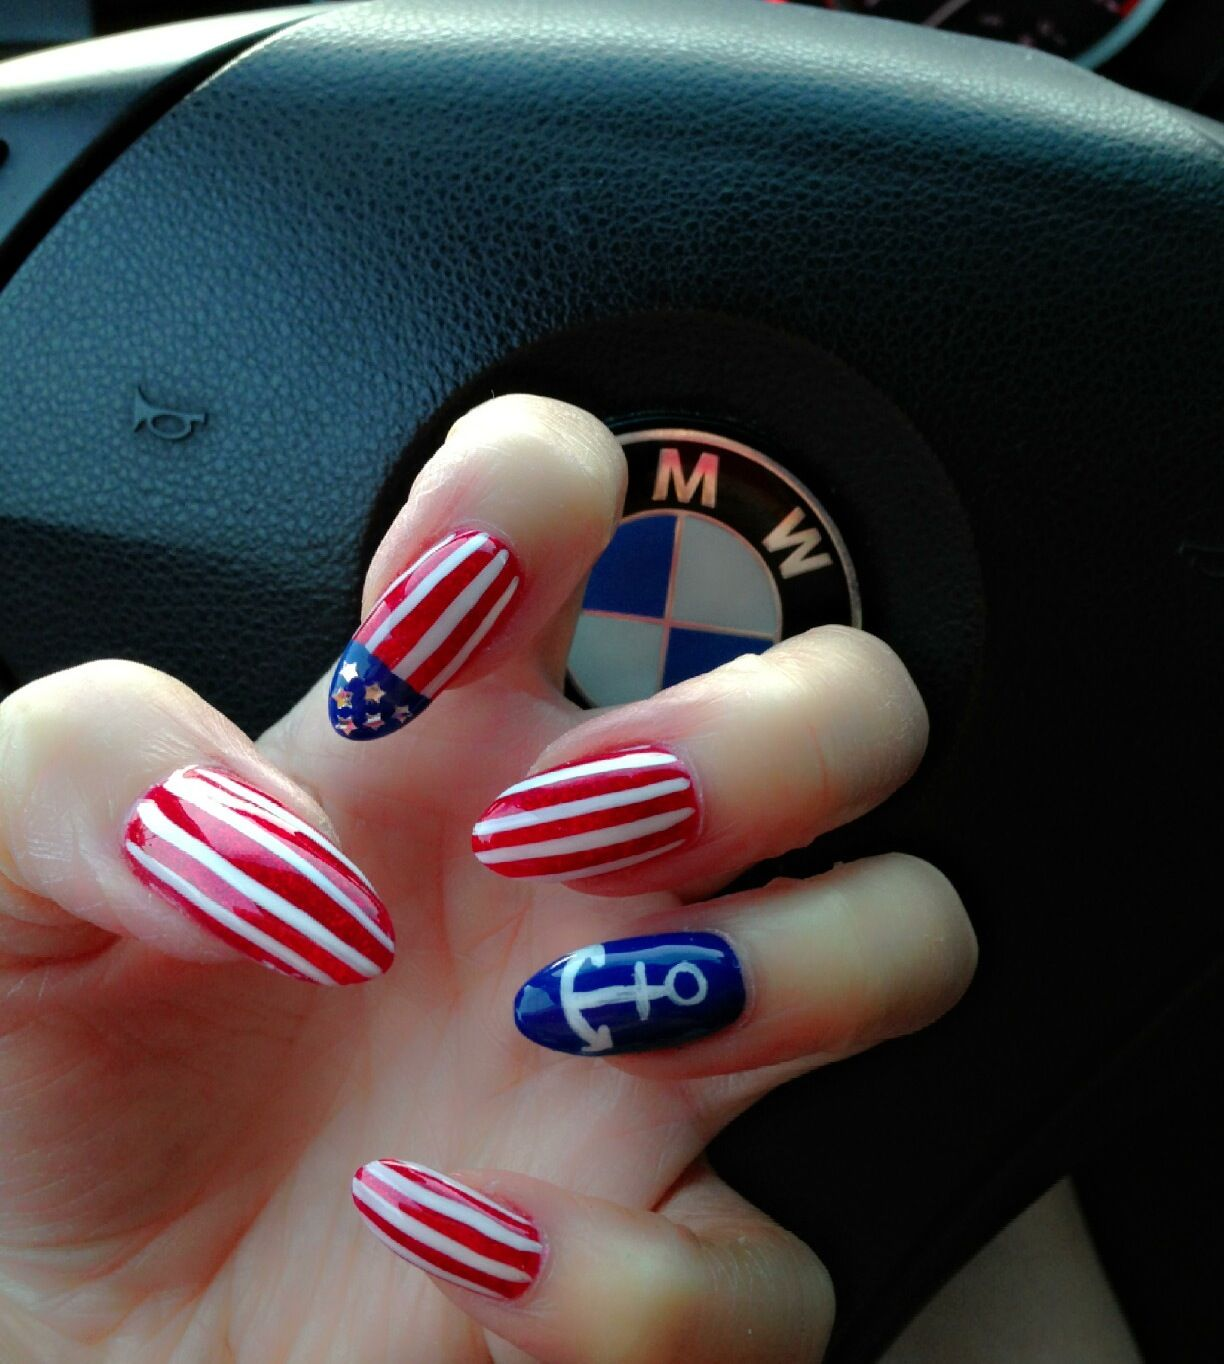 American flag nails design | Nails | Pinterest